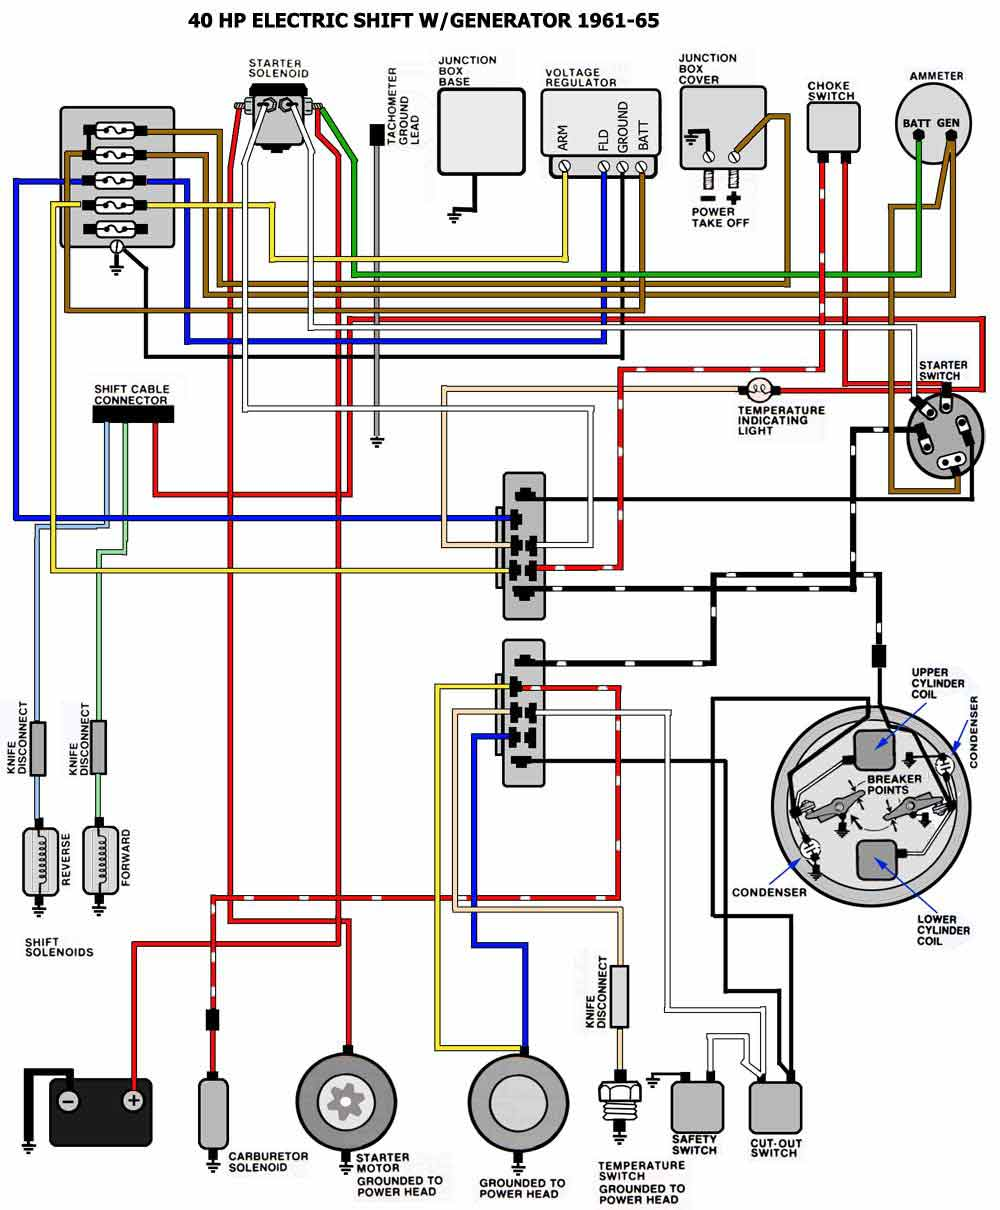 medium resolution of wiring diagram moreover johnson outboard ignition switch wiring brp evinrude ignition switch wiring diagram